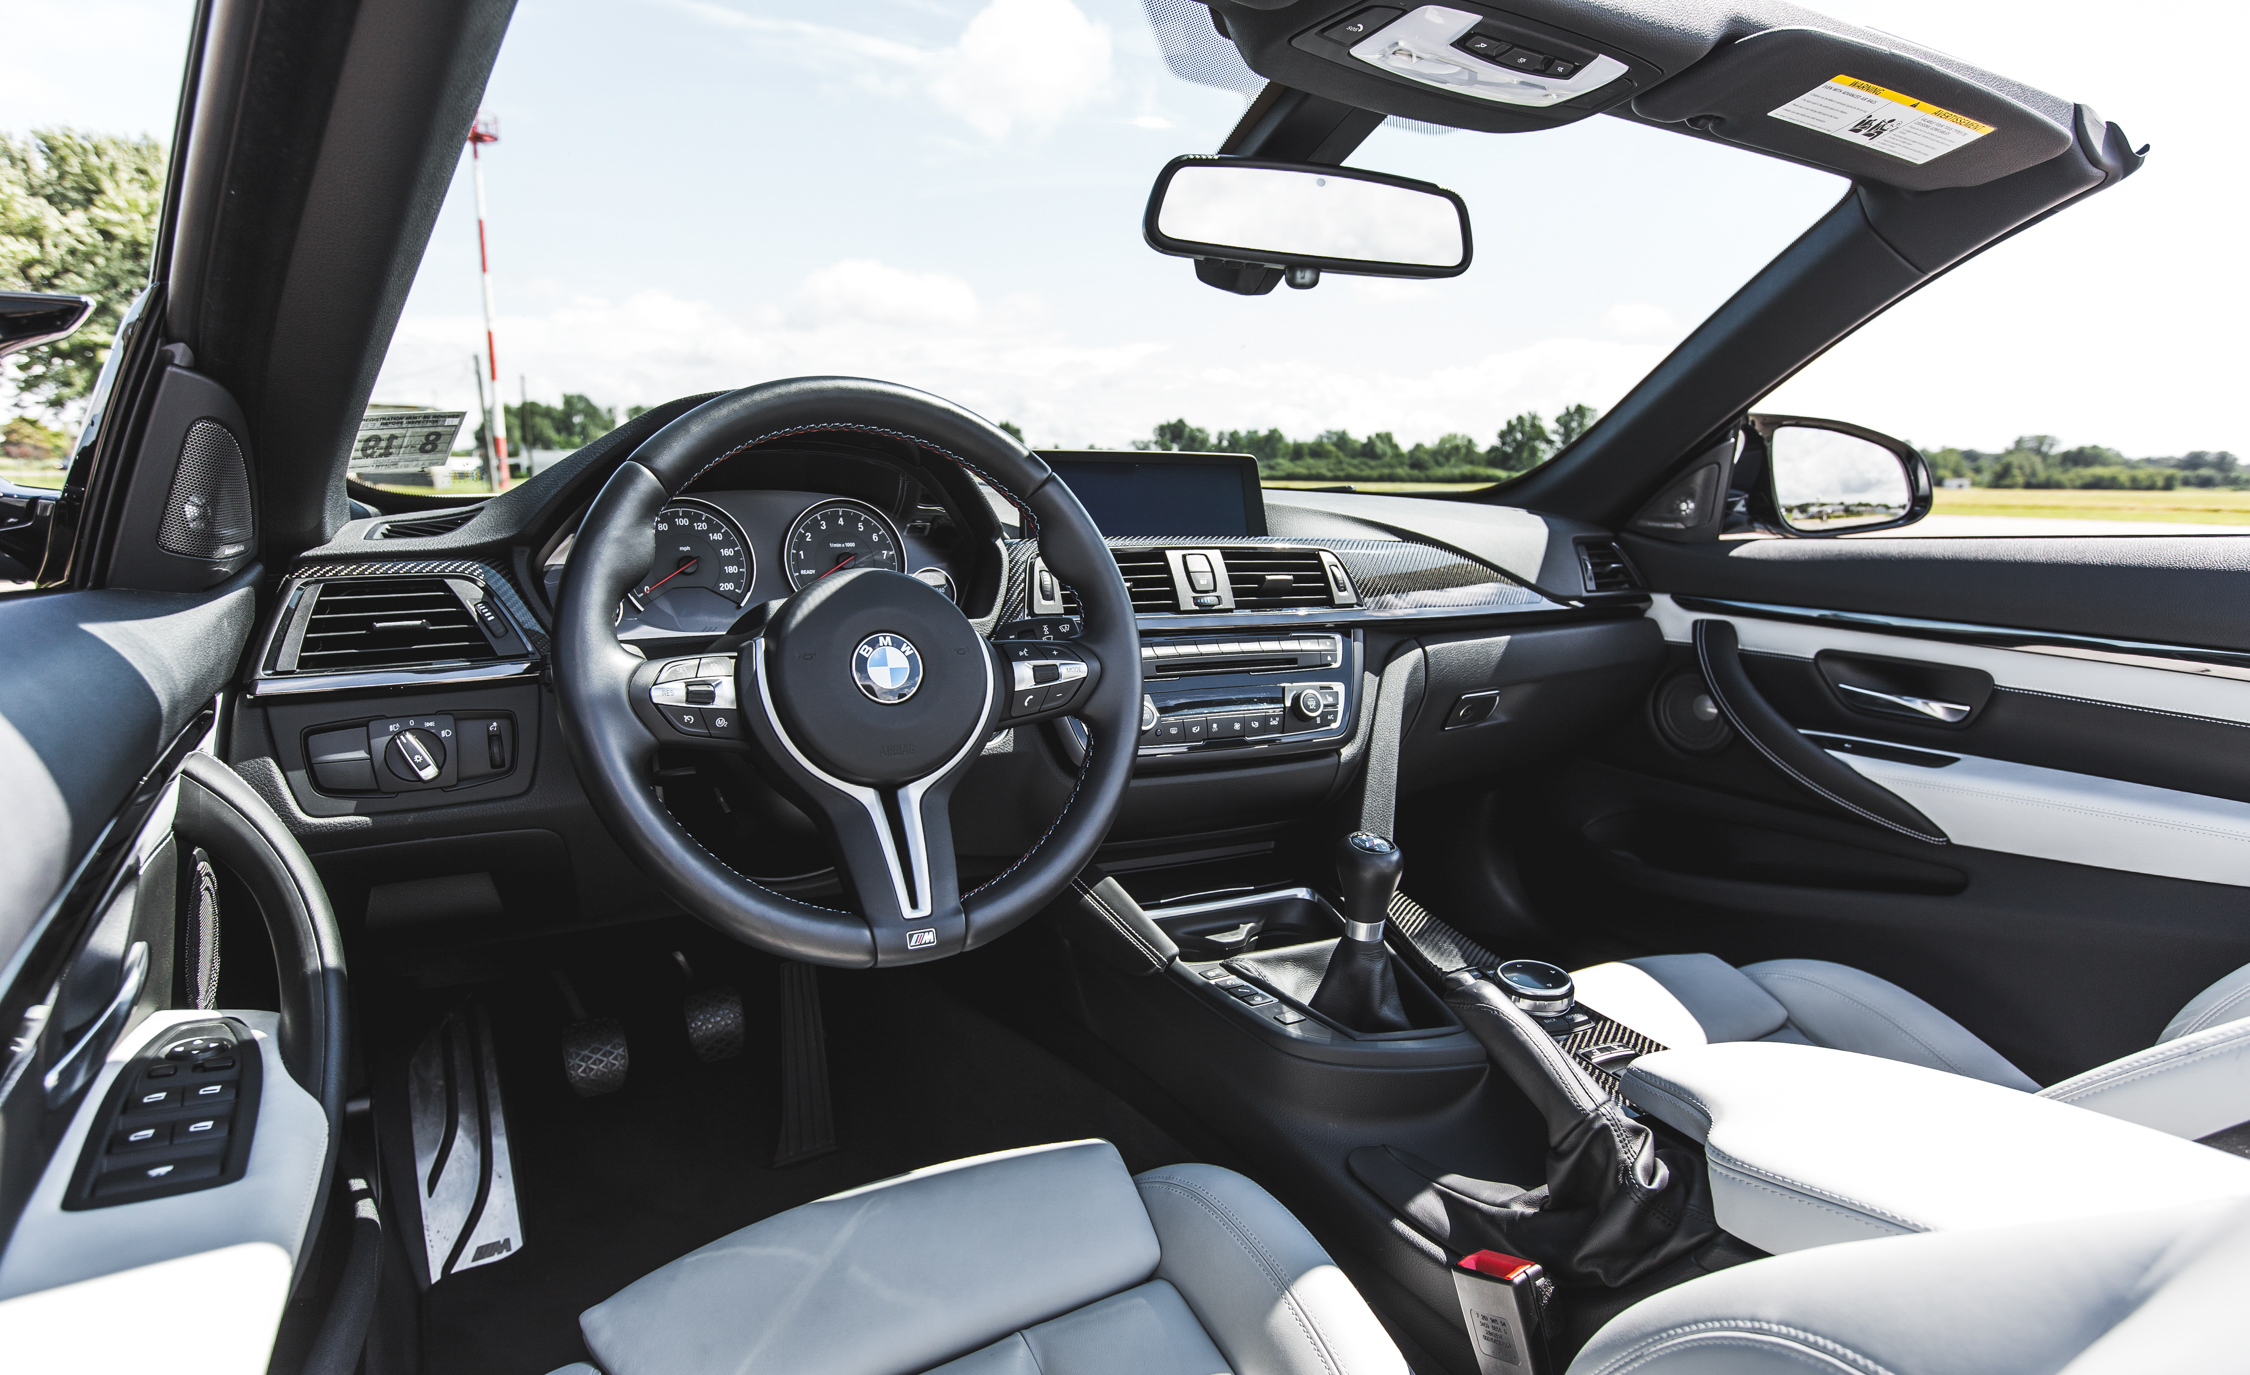 2015 BMW M4 Convertible Interior Cockpit And Dashboard